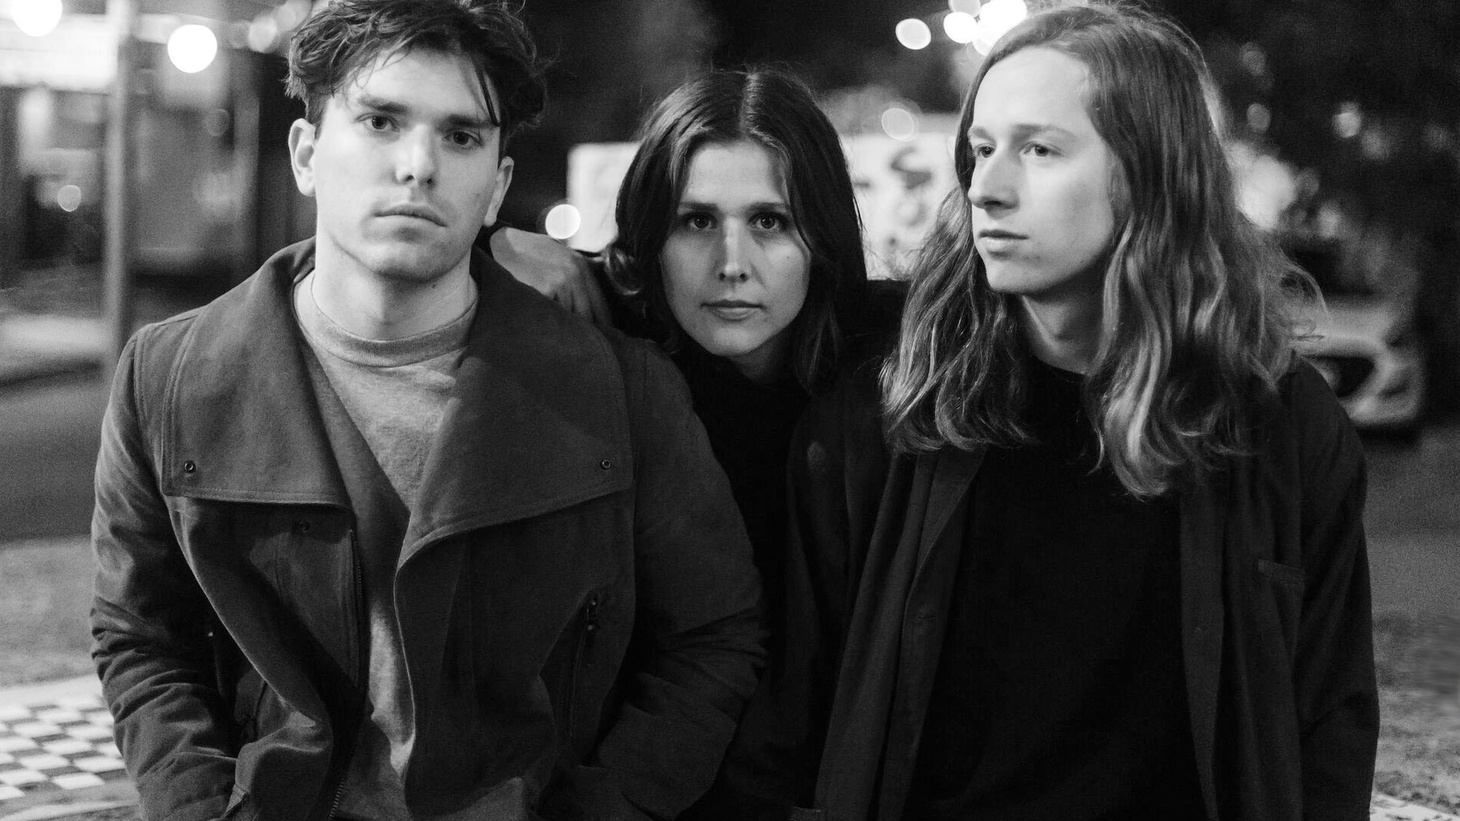 Sydney has a new band that we are excited about. Right now, Middle Kids has released just a few singles but is preparing to release an EP in October.